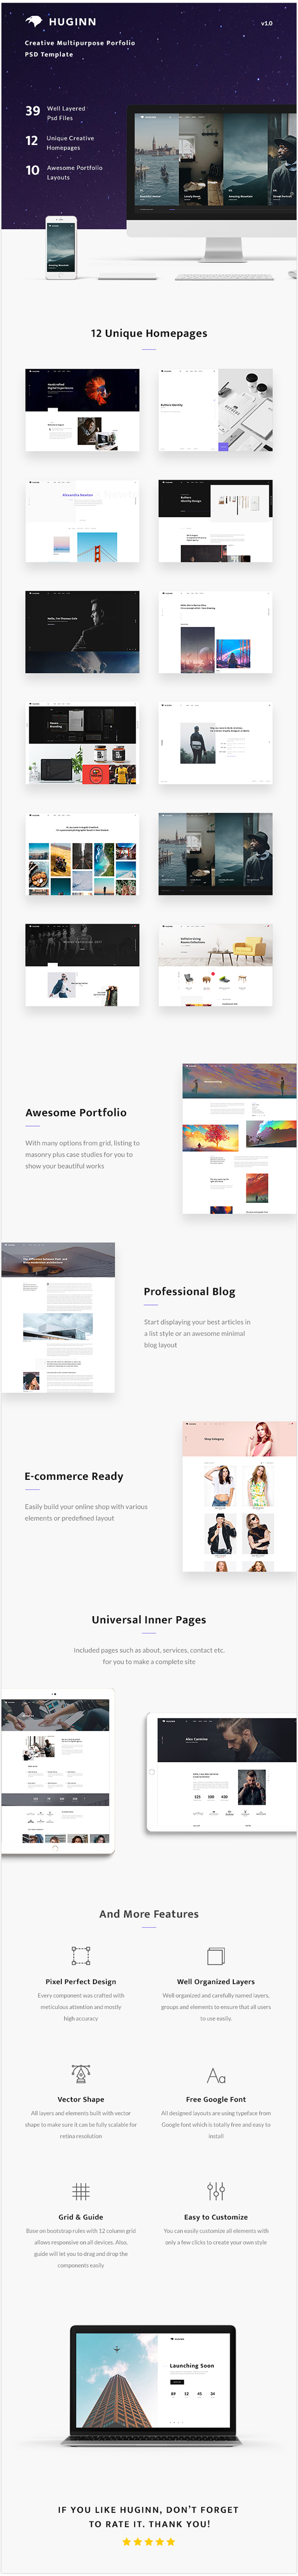 Huginn - Creative Multi-Purpose Portfolio PSD Template - 1